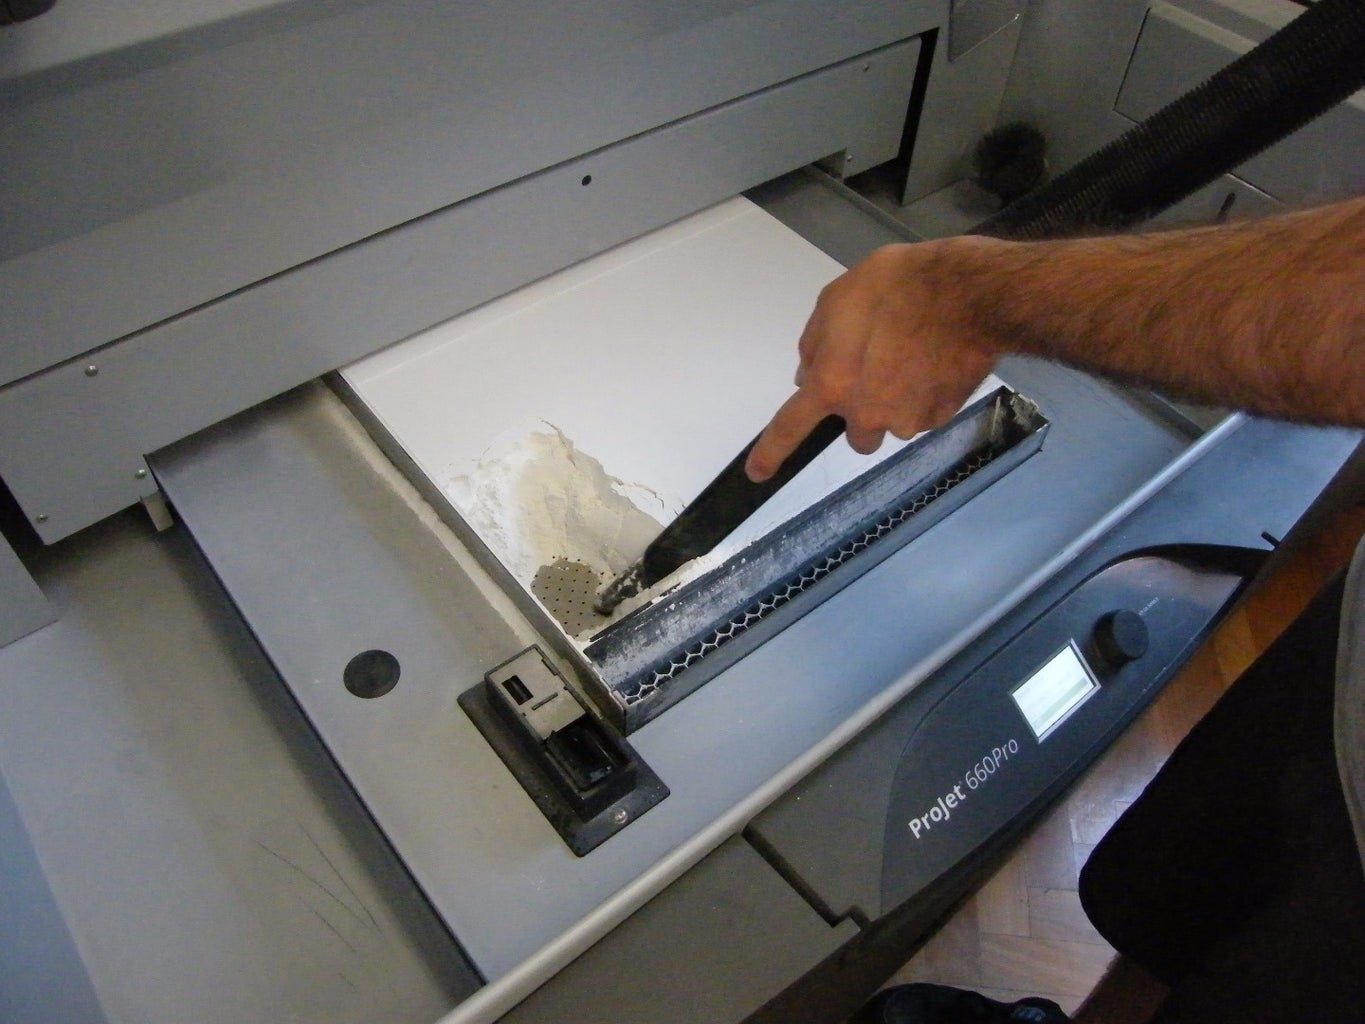 Extracting the Print